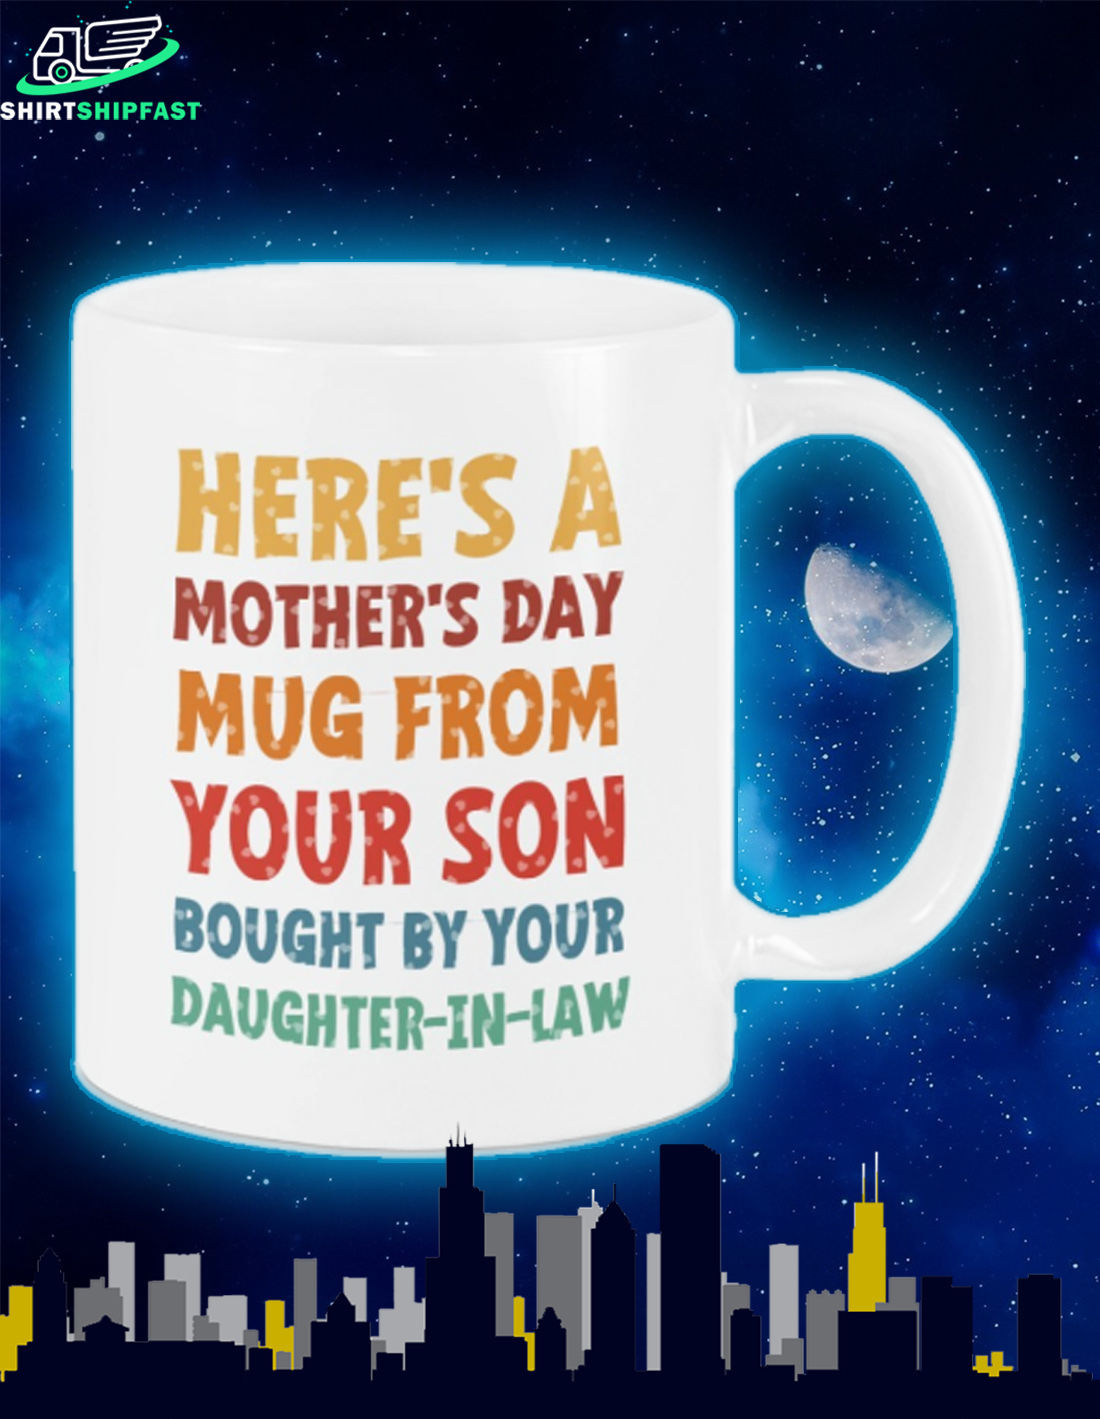 Here's a mother's day mug from your son bought by your daughter in law mug - Picture 2